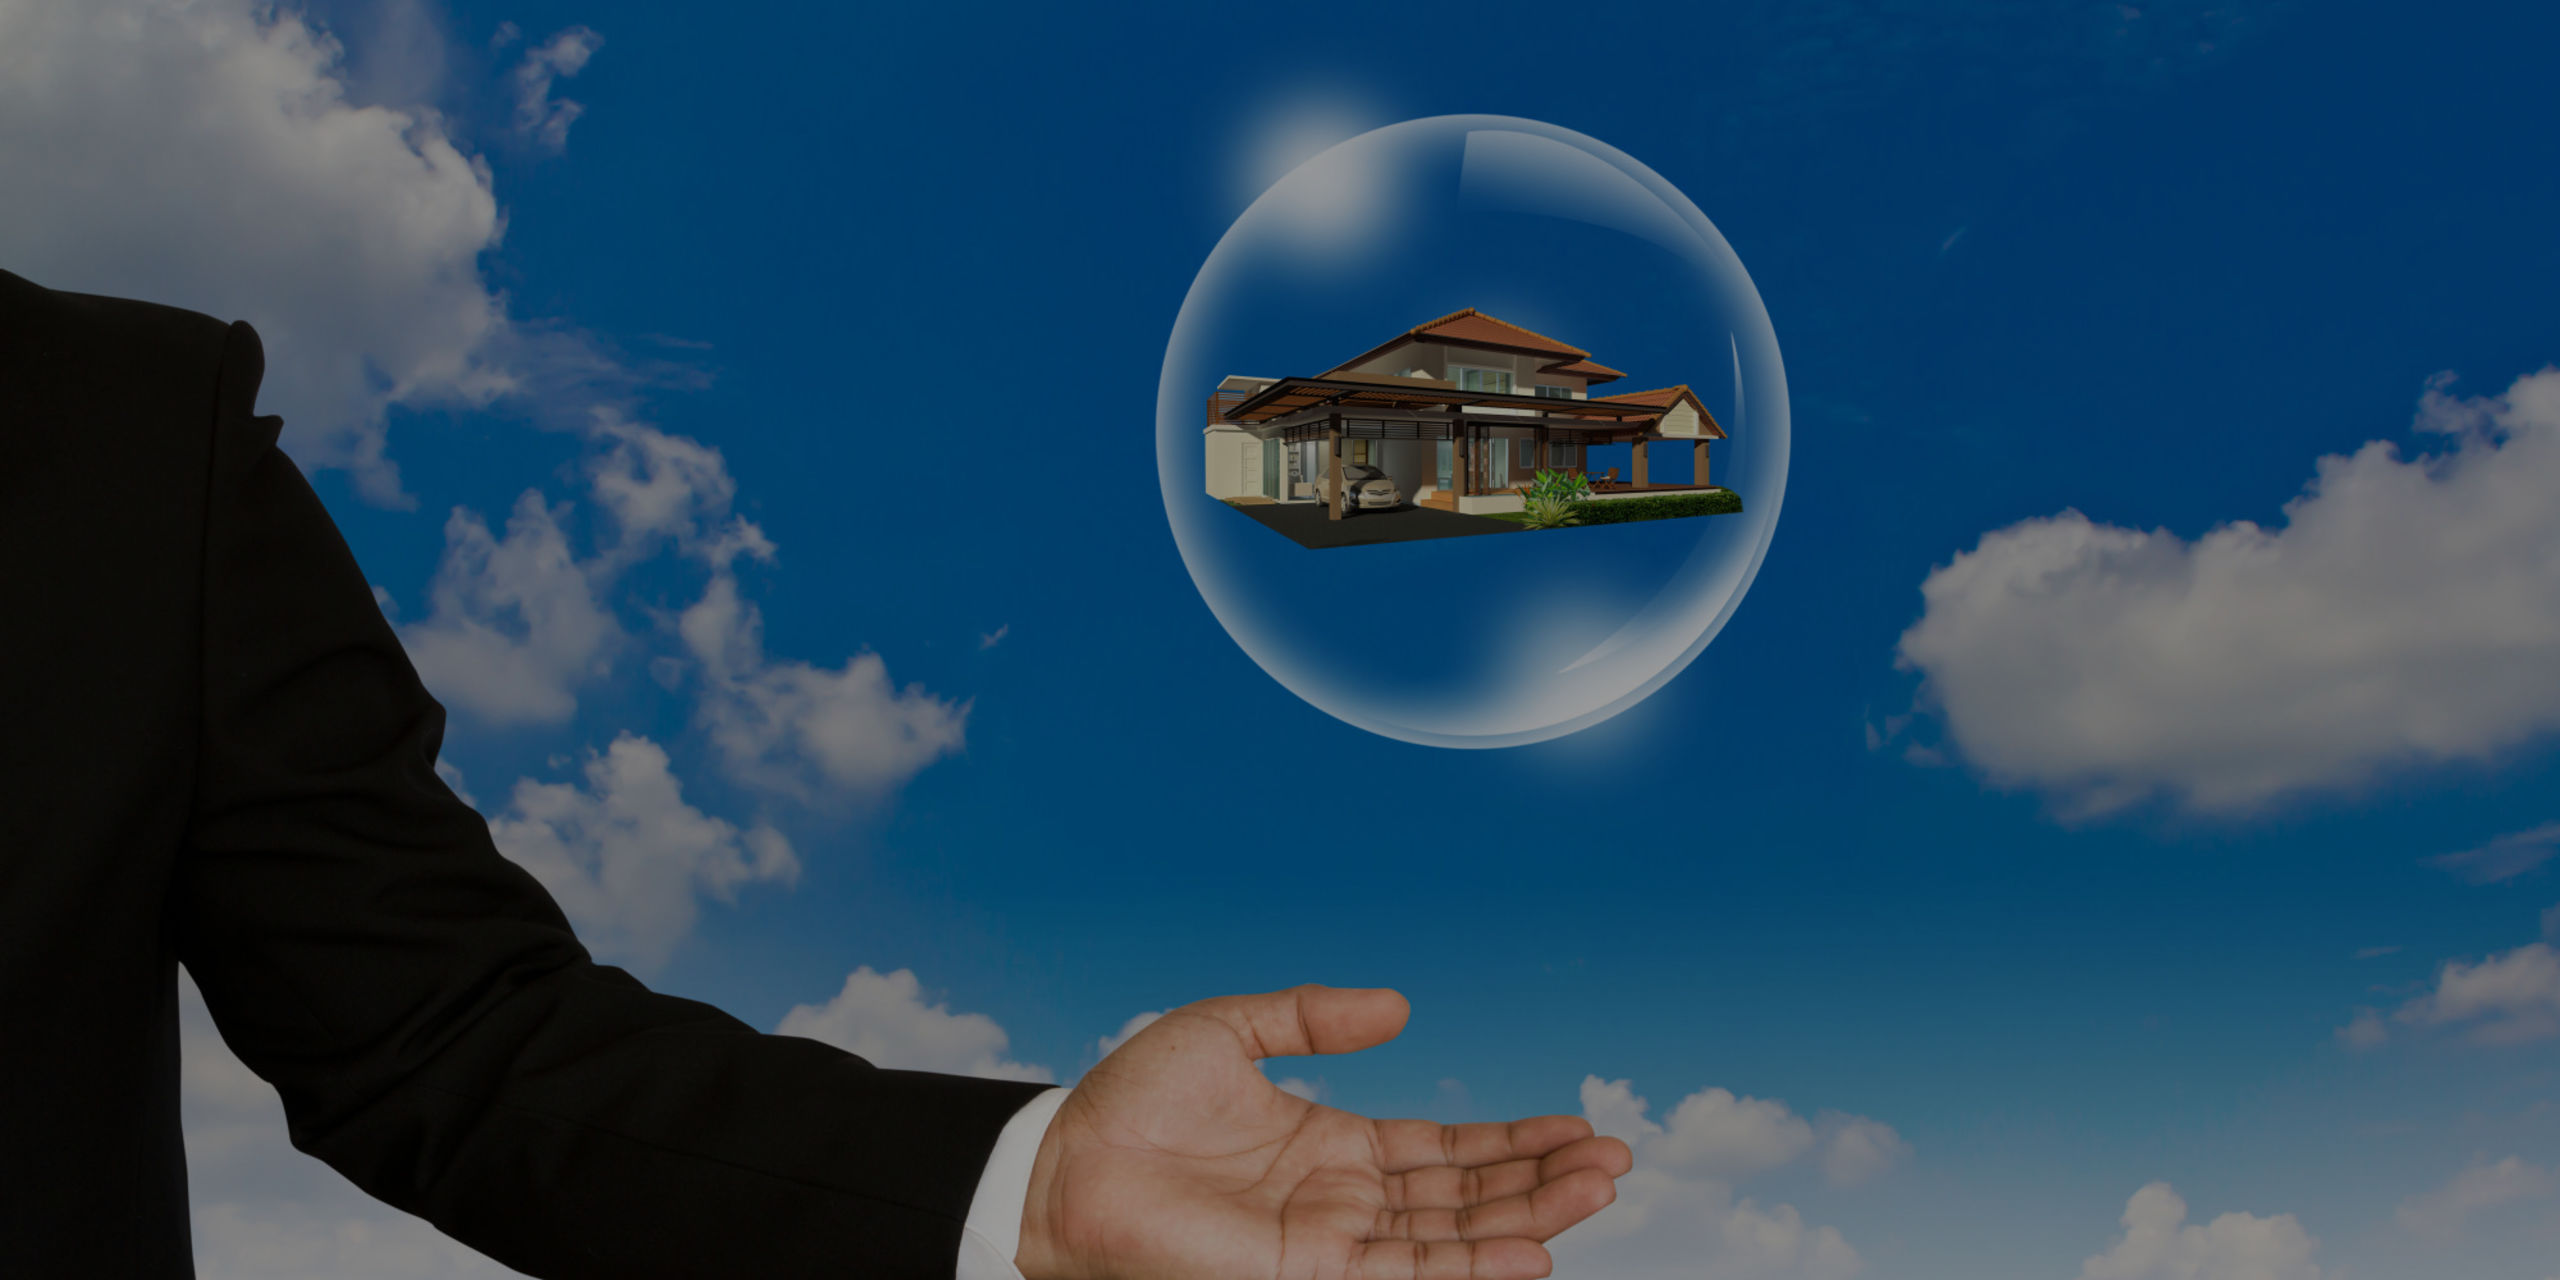 Dallas Real Estate Bubble? Price Rises Threatening Not!